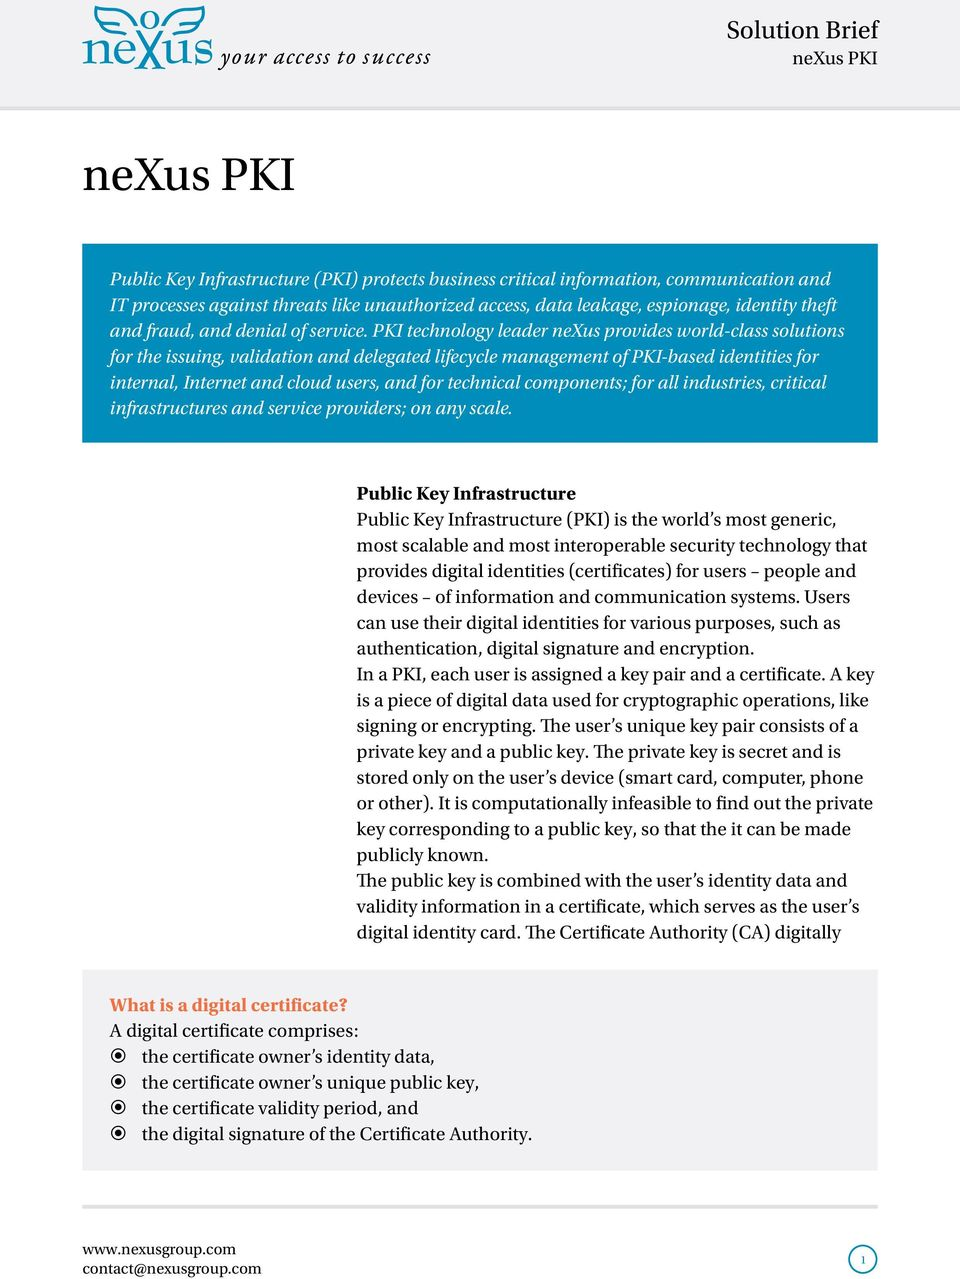 PKI technology leader nexus provides world-class solutions for the issuing, validation and delegated lifecycle management of PKI-based identities for internal, Internet and cloud users, and for